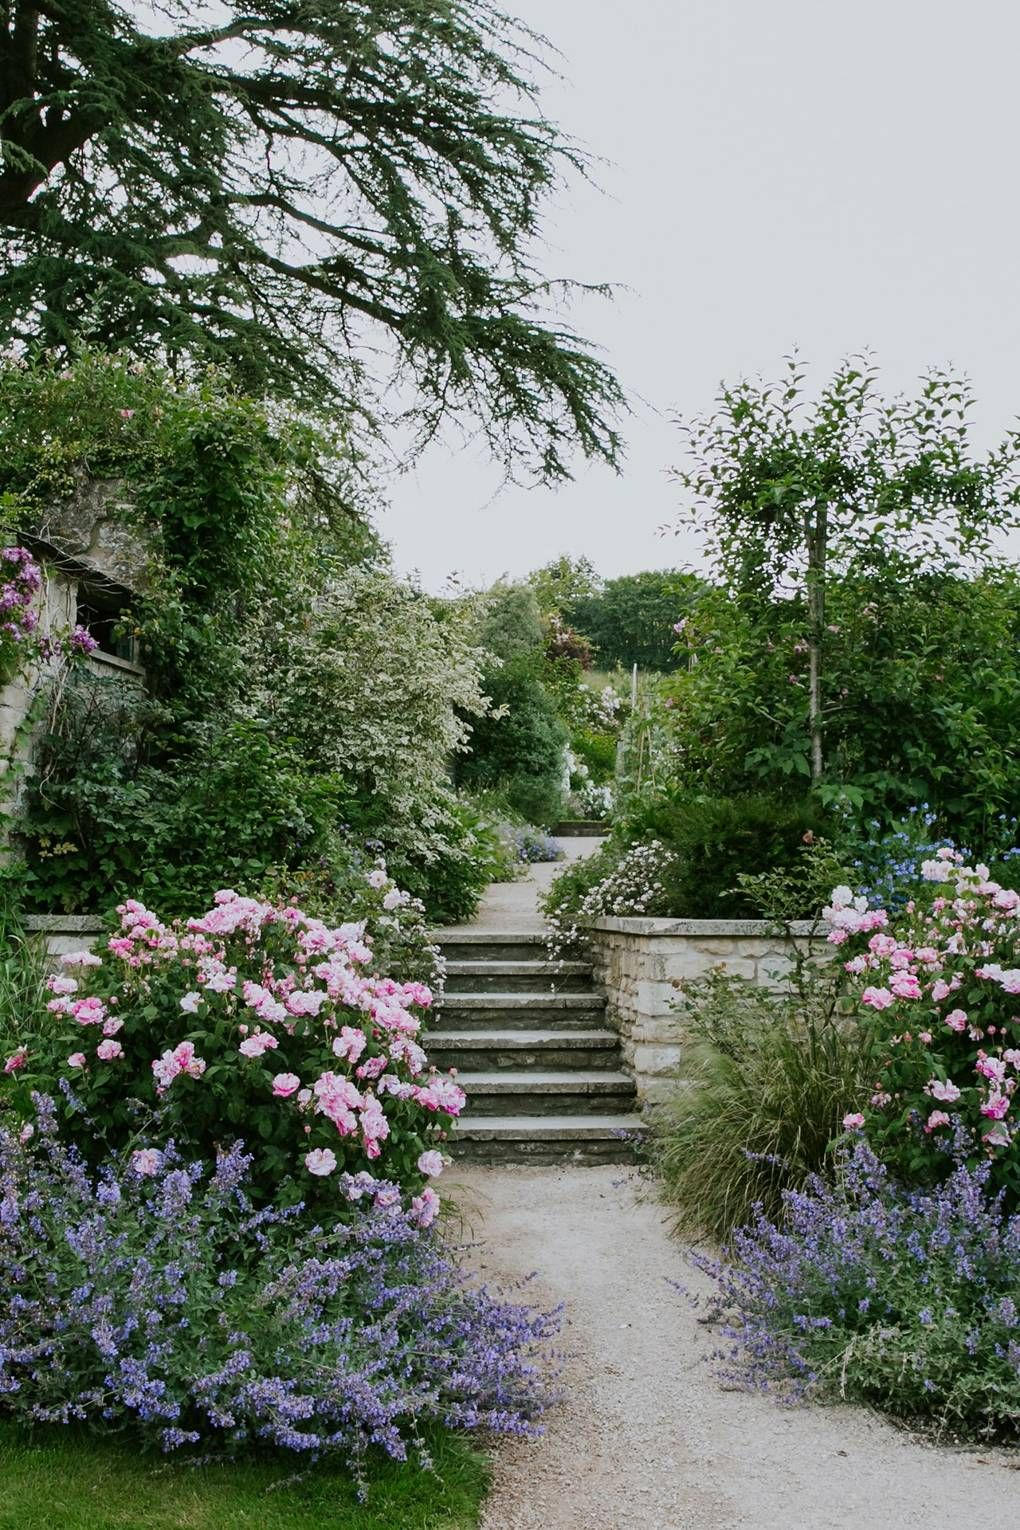 The best of The List Gardens is part of Cottage garden Landscaping - Discover our favourite garden designs from The List members on HOUSE  design, food and travel by House & Garden